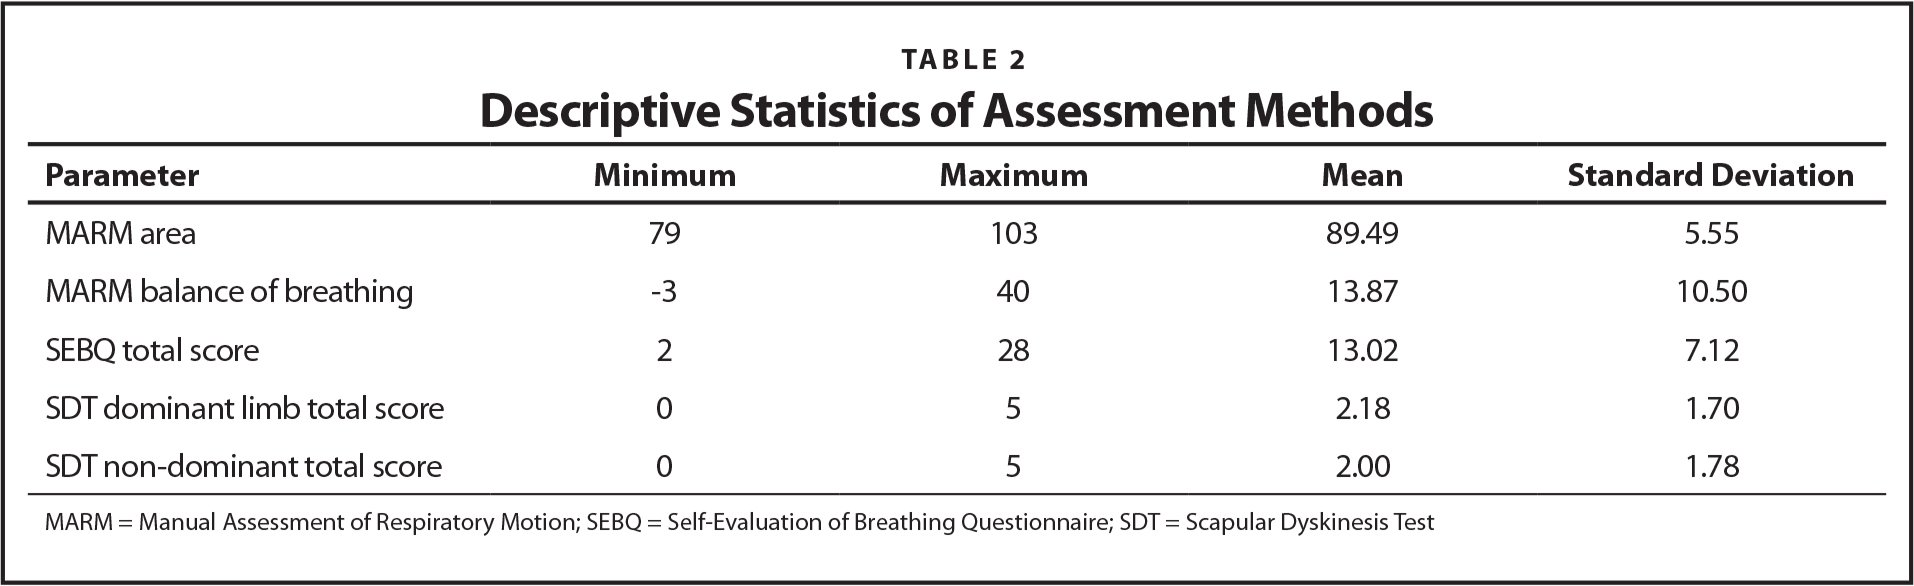 Descriptive Statistics of Assessment Methods